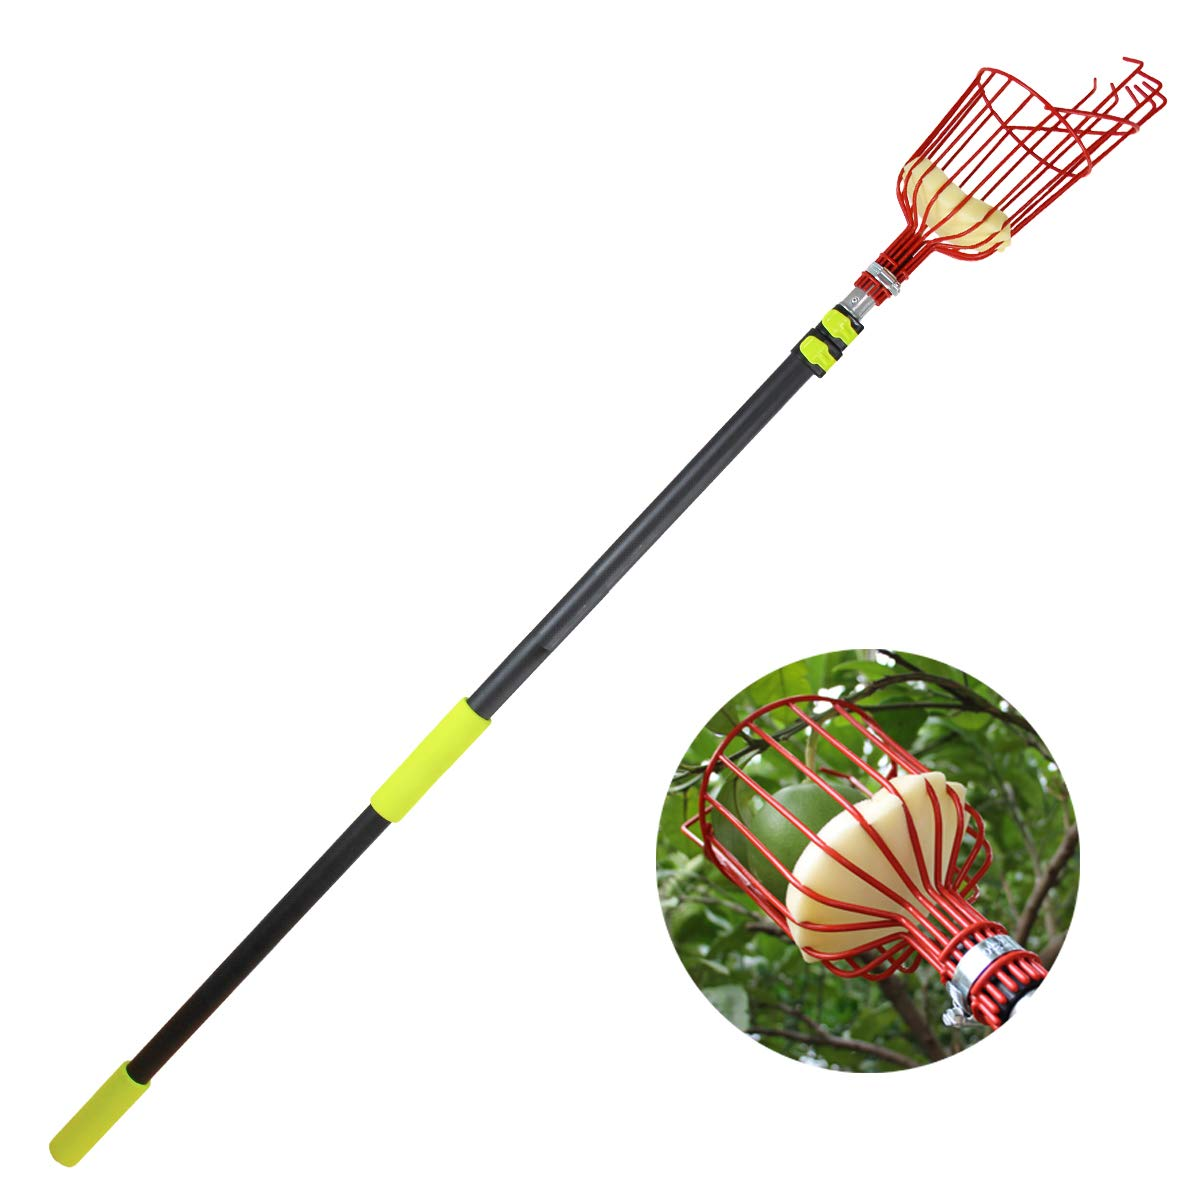 Mesa Fruit Tree Picker with telescoping Pole and Twist-on Basket, Red Head Lightweight Aluminum Extension Picking Tool 13ft for Getting Apples Oranges and All Fruits by Mesa